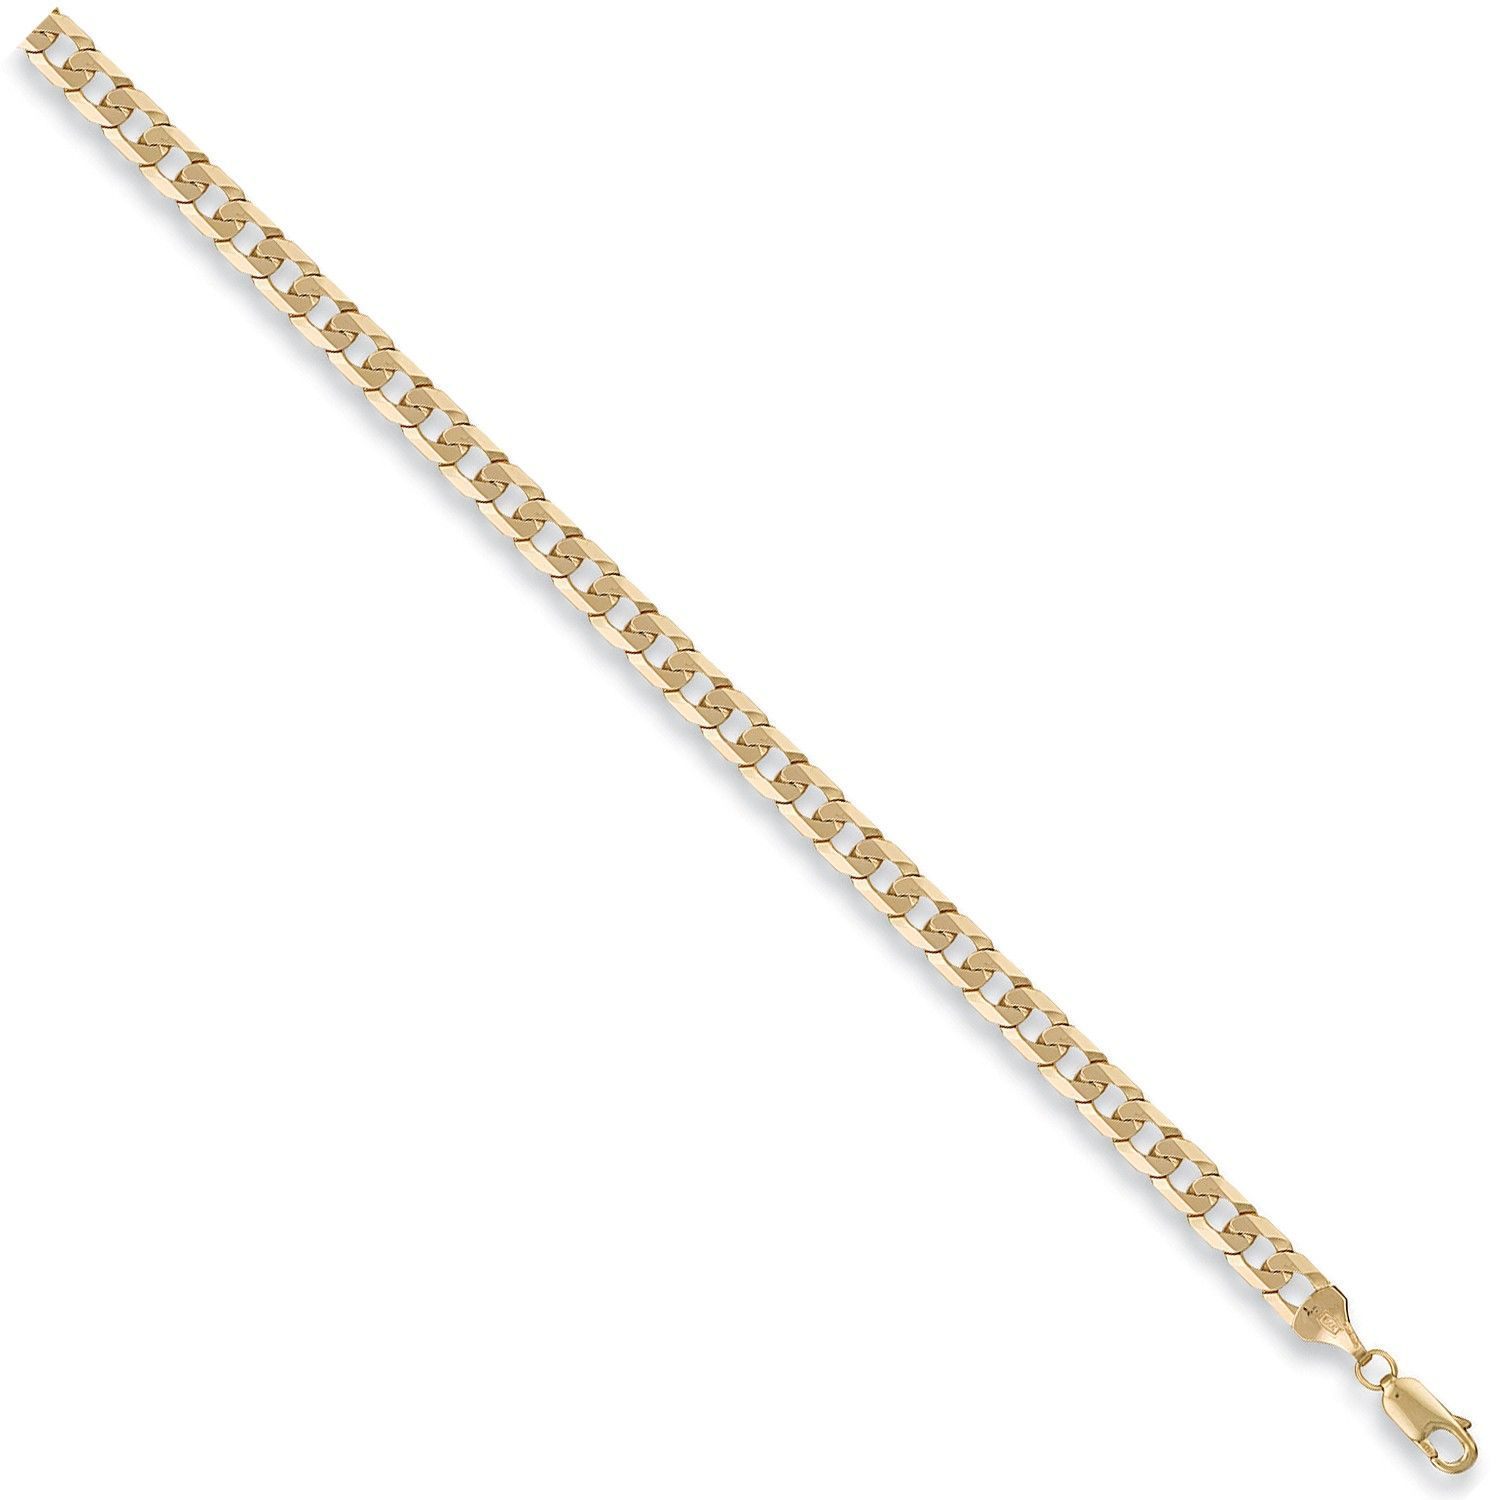 9ct Yellow Gold 5.5mm Curb Chain